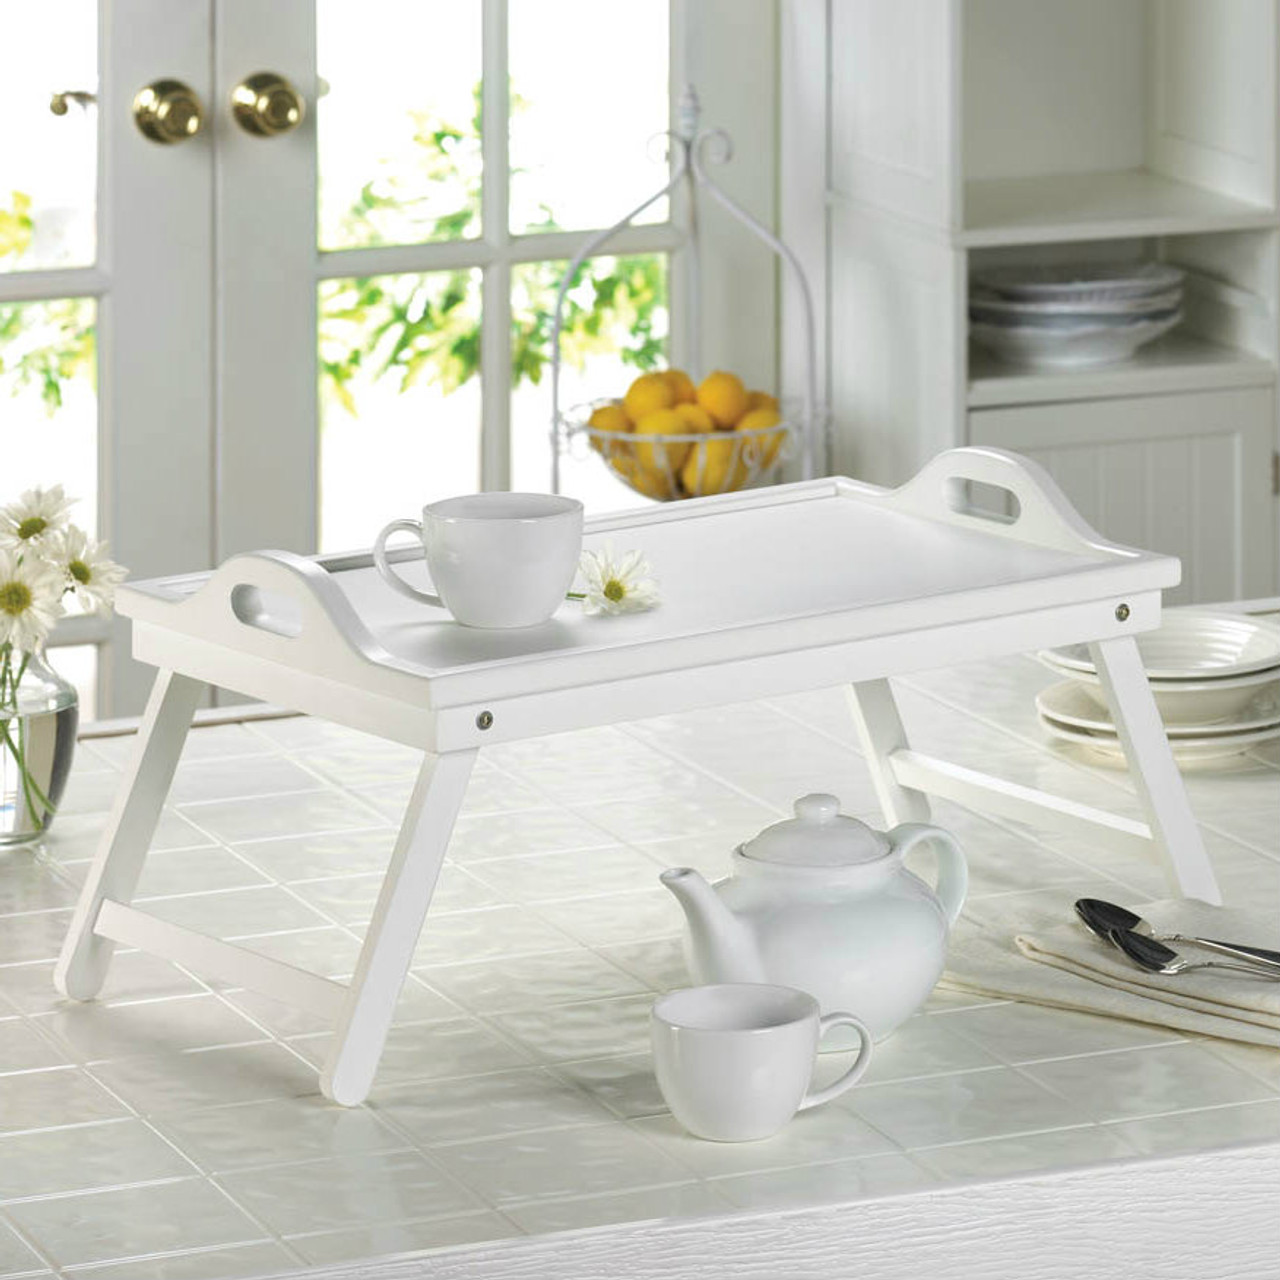 Breakfast Trays For Bed Beauteous White Wood BreakfastinBed Tray AEWholesale